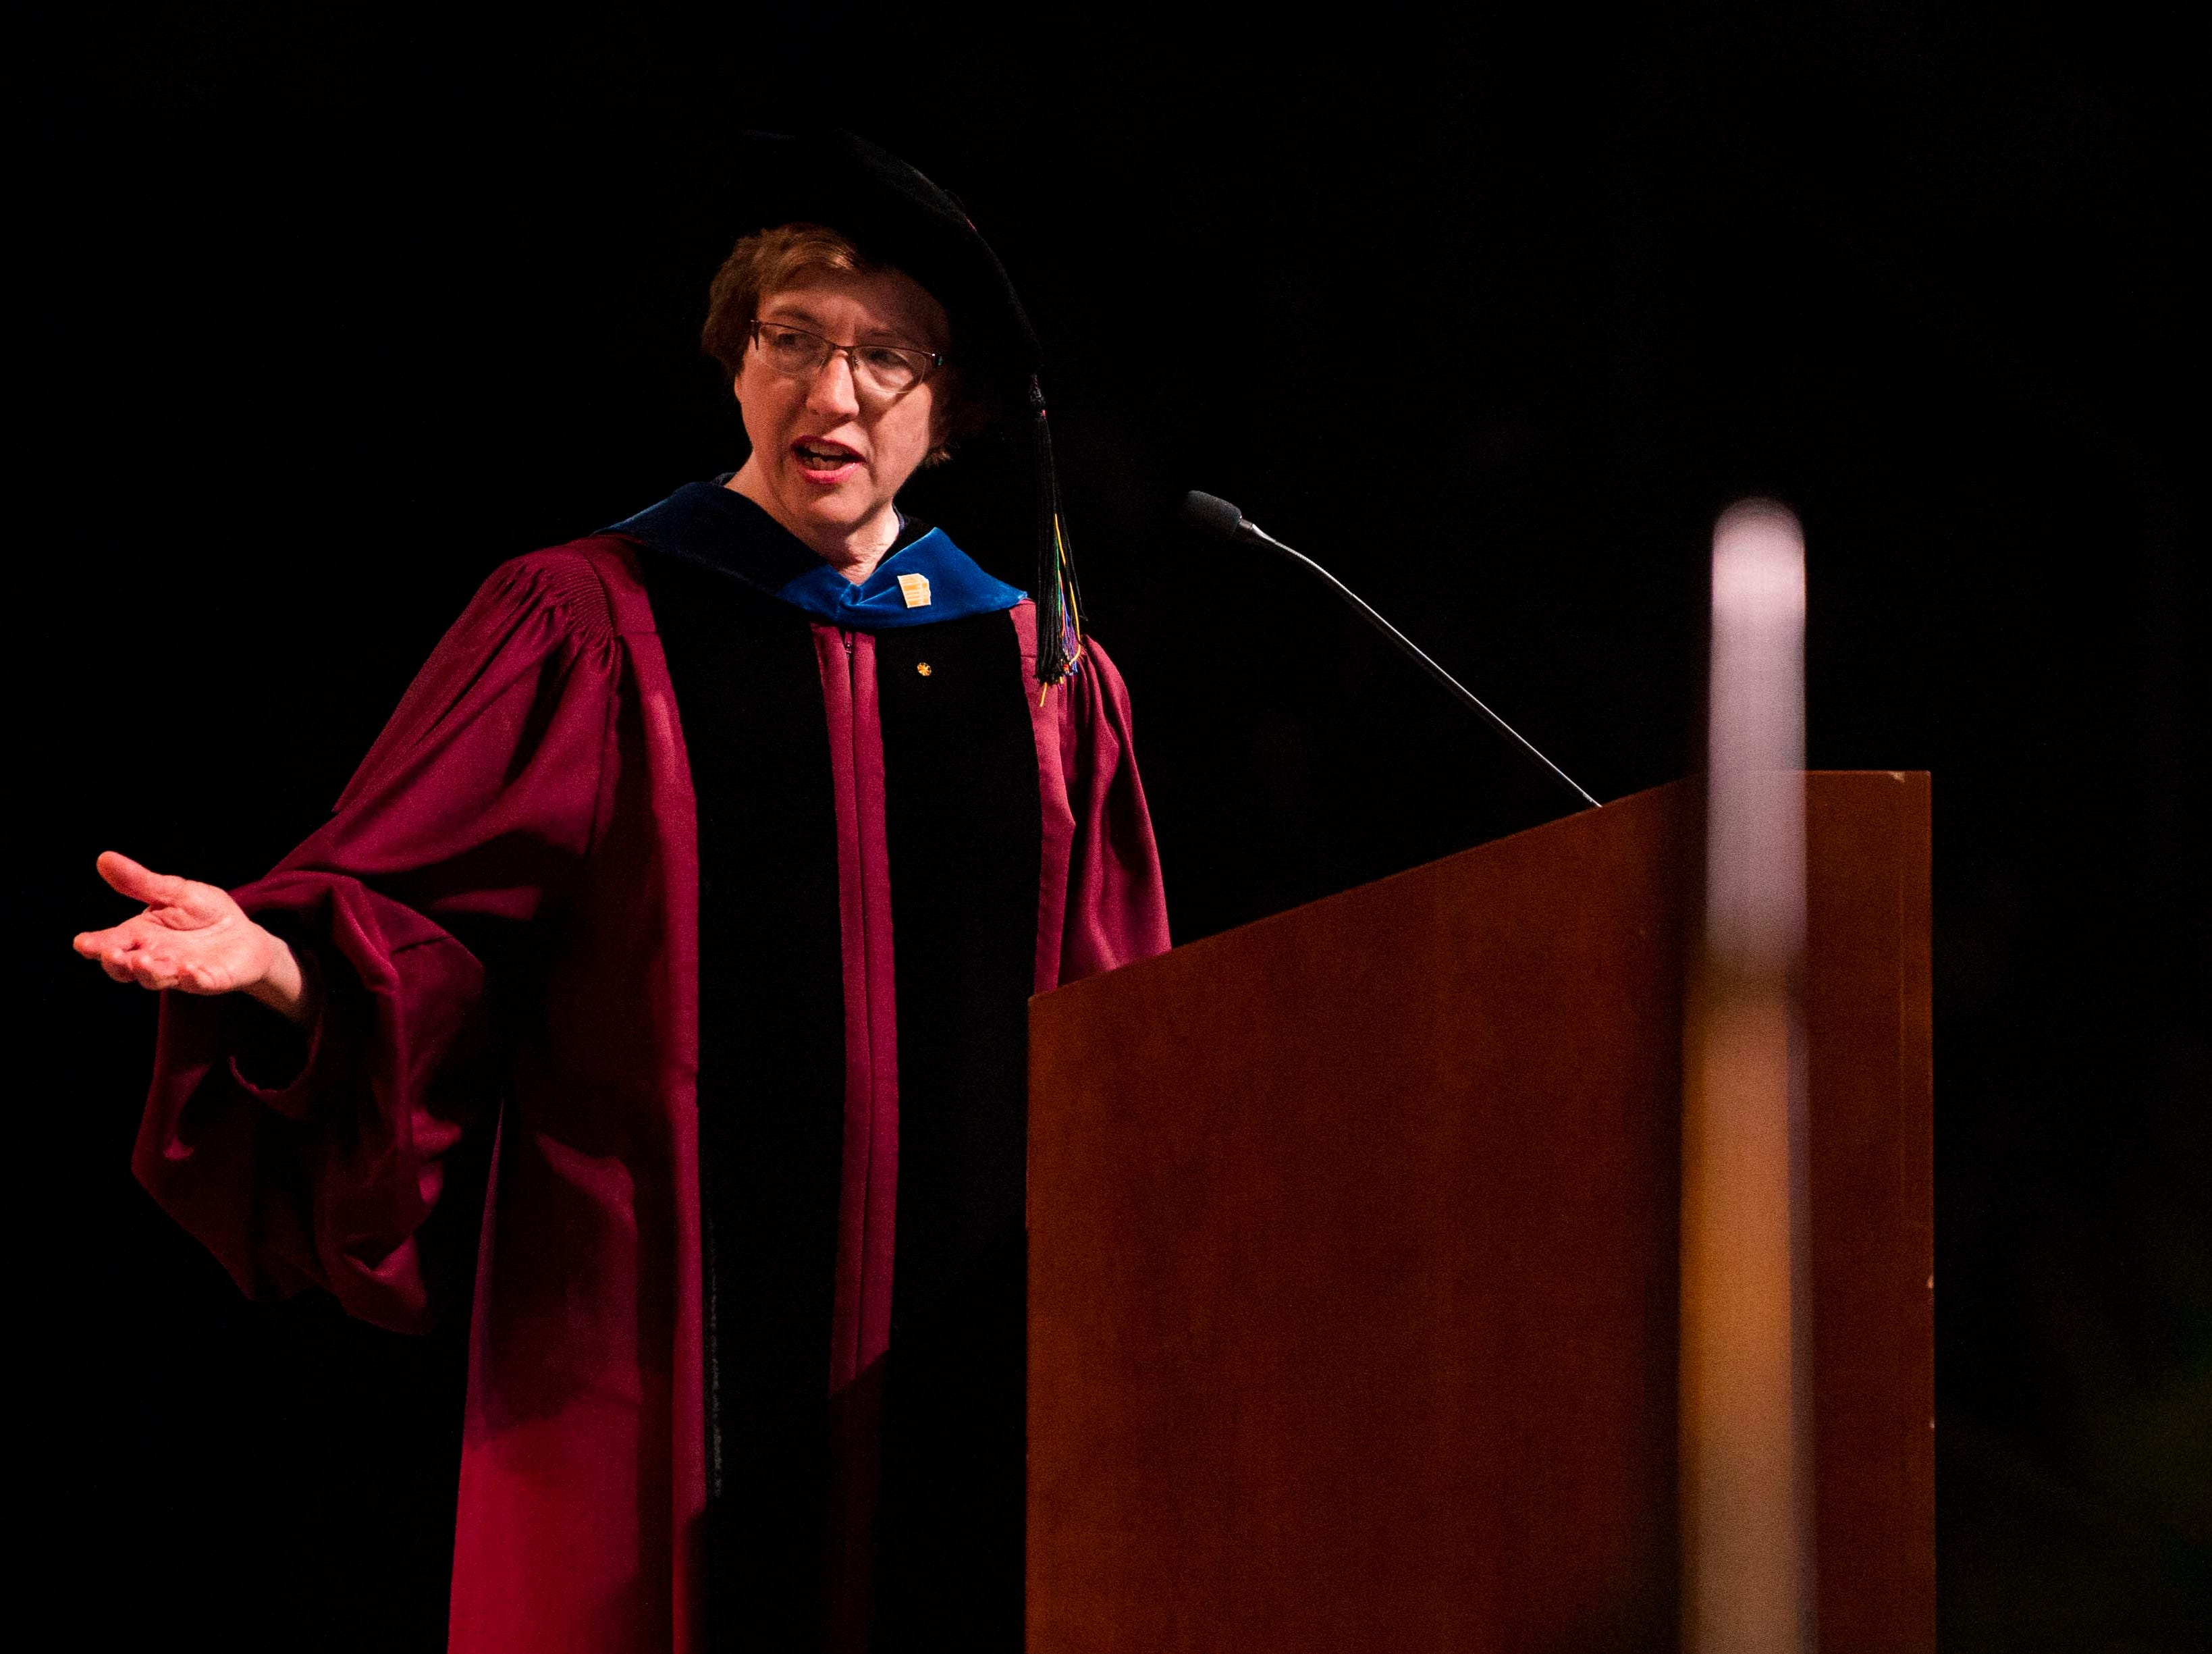 Dean of the College of Arts and Sciences Theresa Lee speaks during University of Tennessee's College of Arts and Sciences commencement in Thompson-Boling arena in Knoxville, Saturday, May 11, 2019.